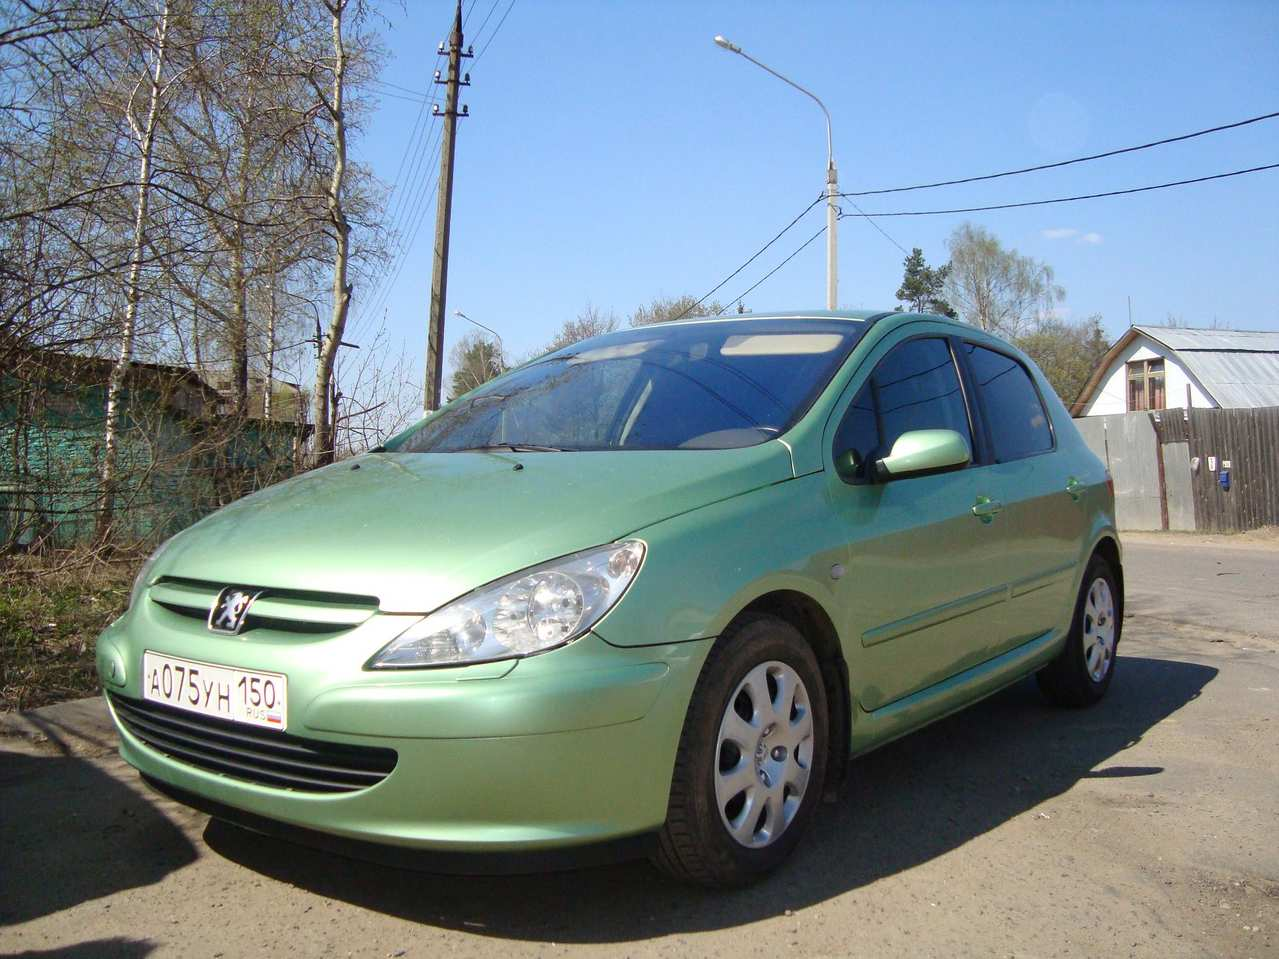 2004 peugeot 307 photos 1 6 gasoline ff automatic for sale. Black Bedroom Furniture Sets. Home Design Ideas